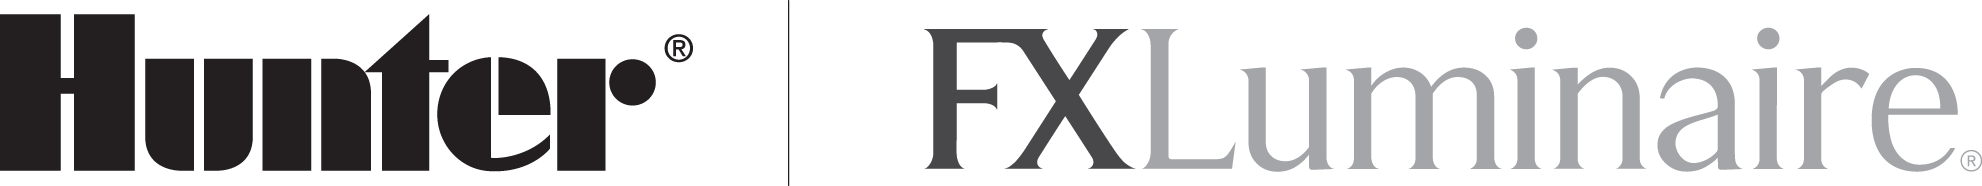 Hunter_FX_Logo_100Black_h.png